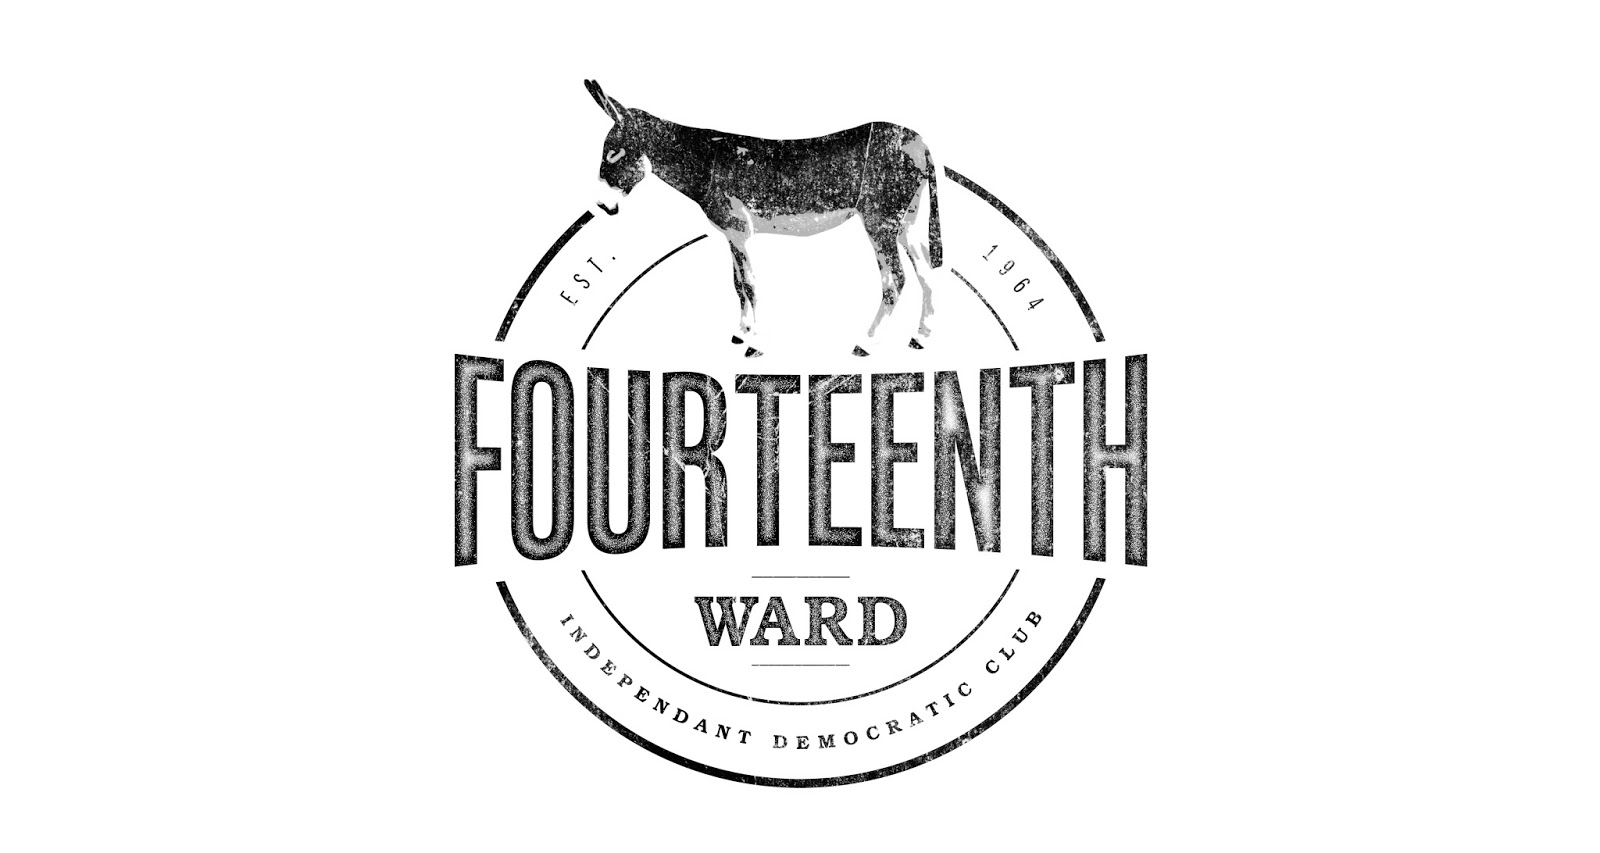 14th Ward Independent Democratic Club Archives: May 2014